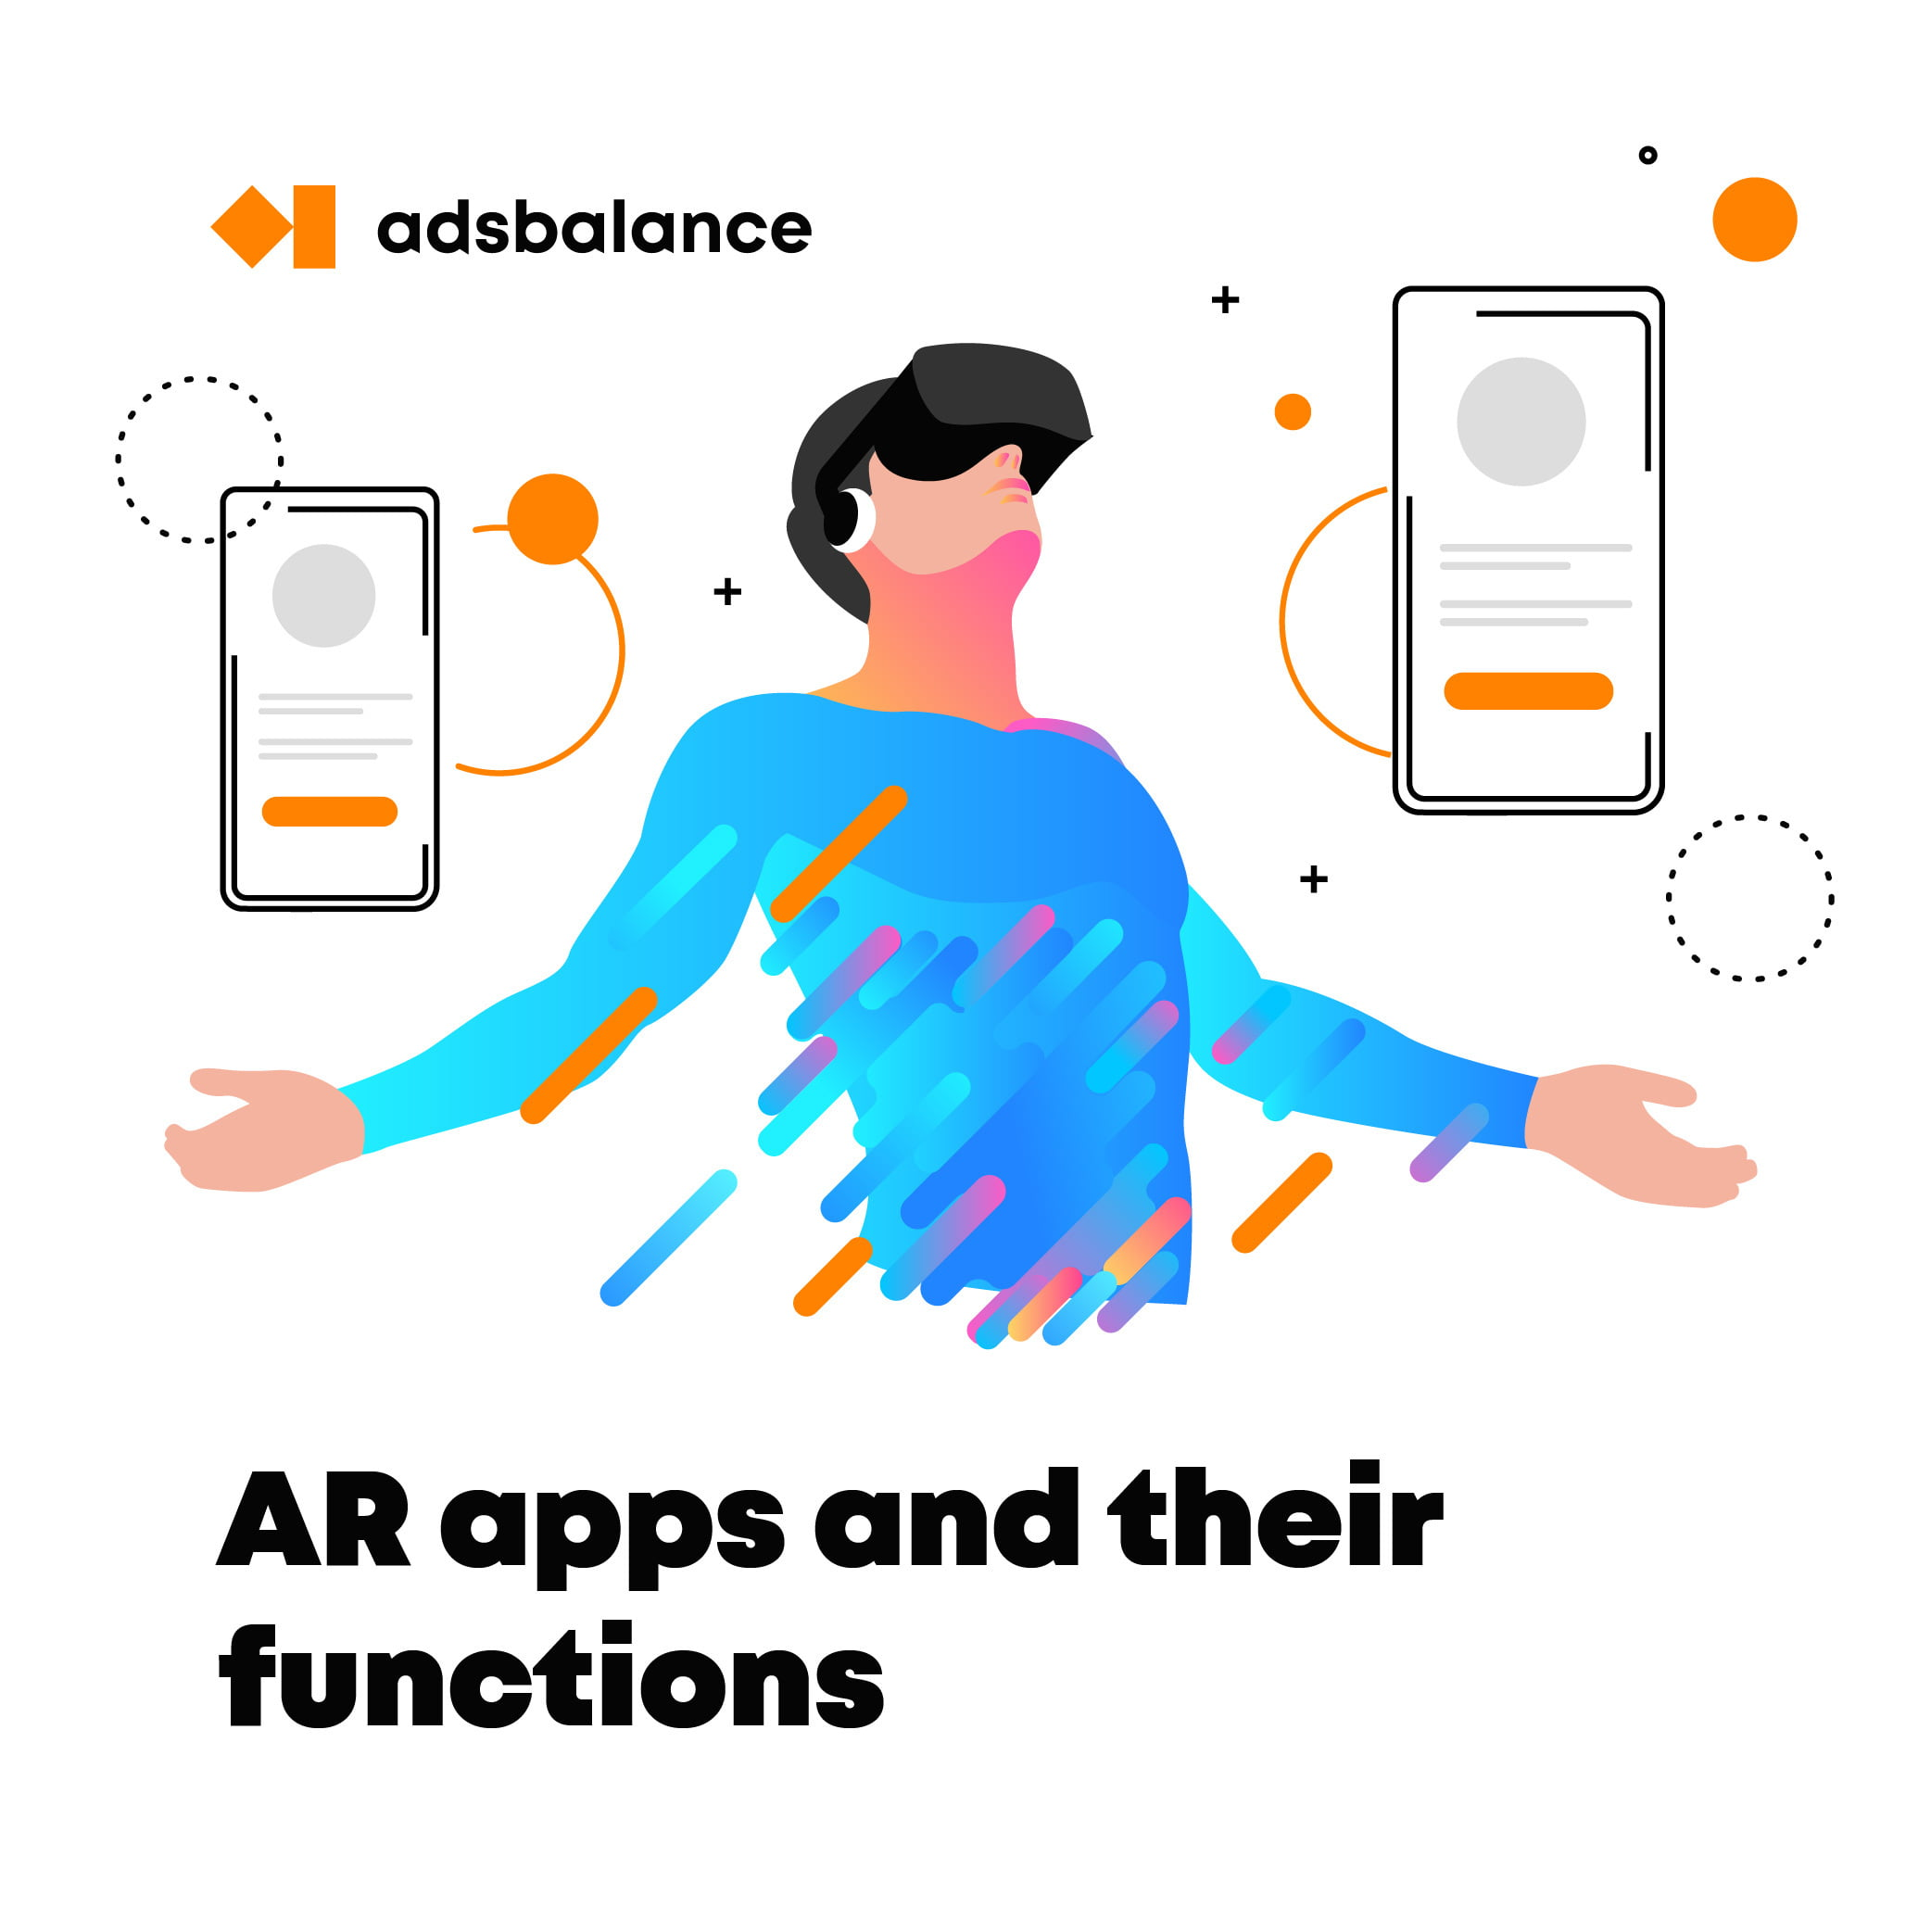 ar apps and functions